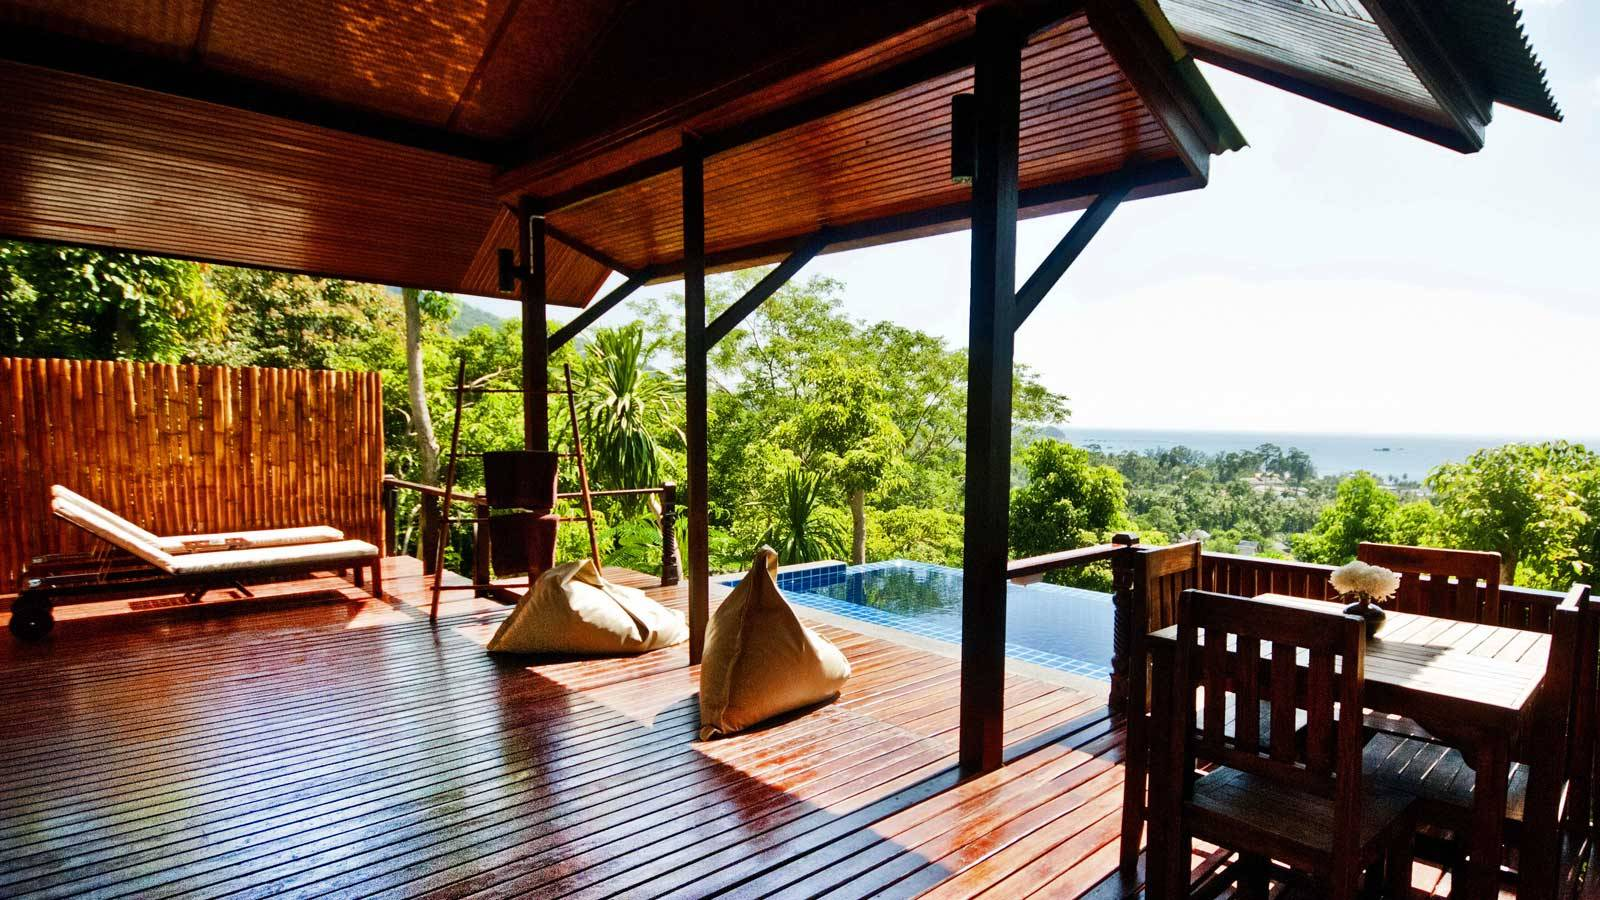 About us luxury boutique pool villas the place koh tao for Boutique luxury